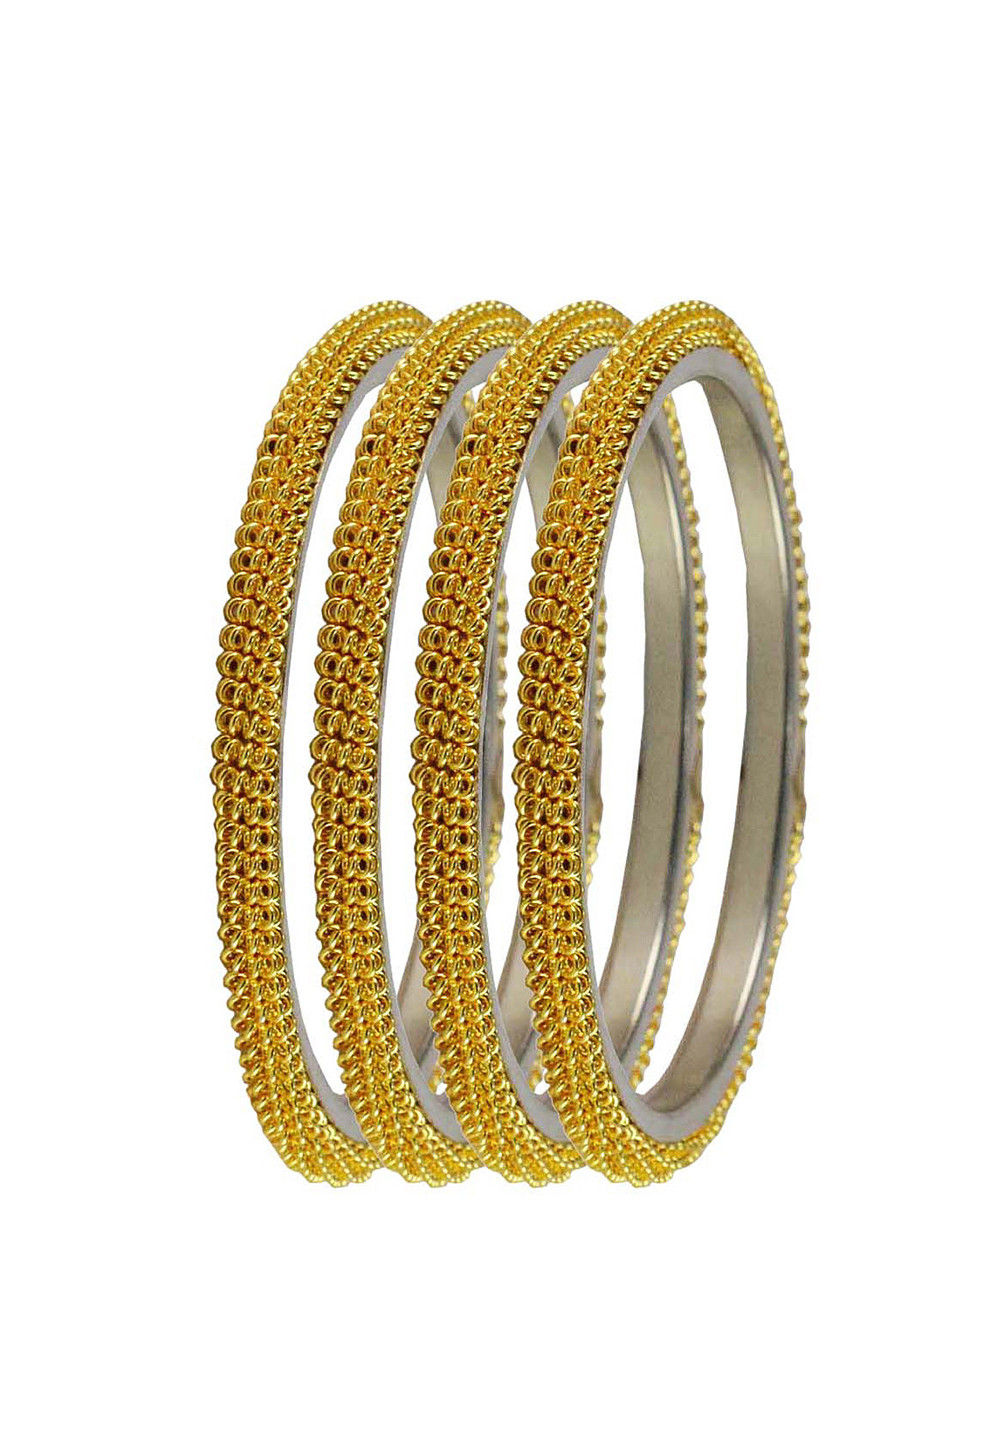 Golden Metallic Bangles